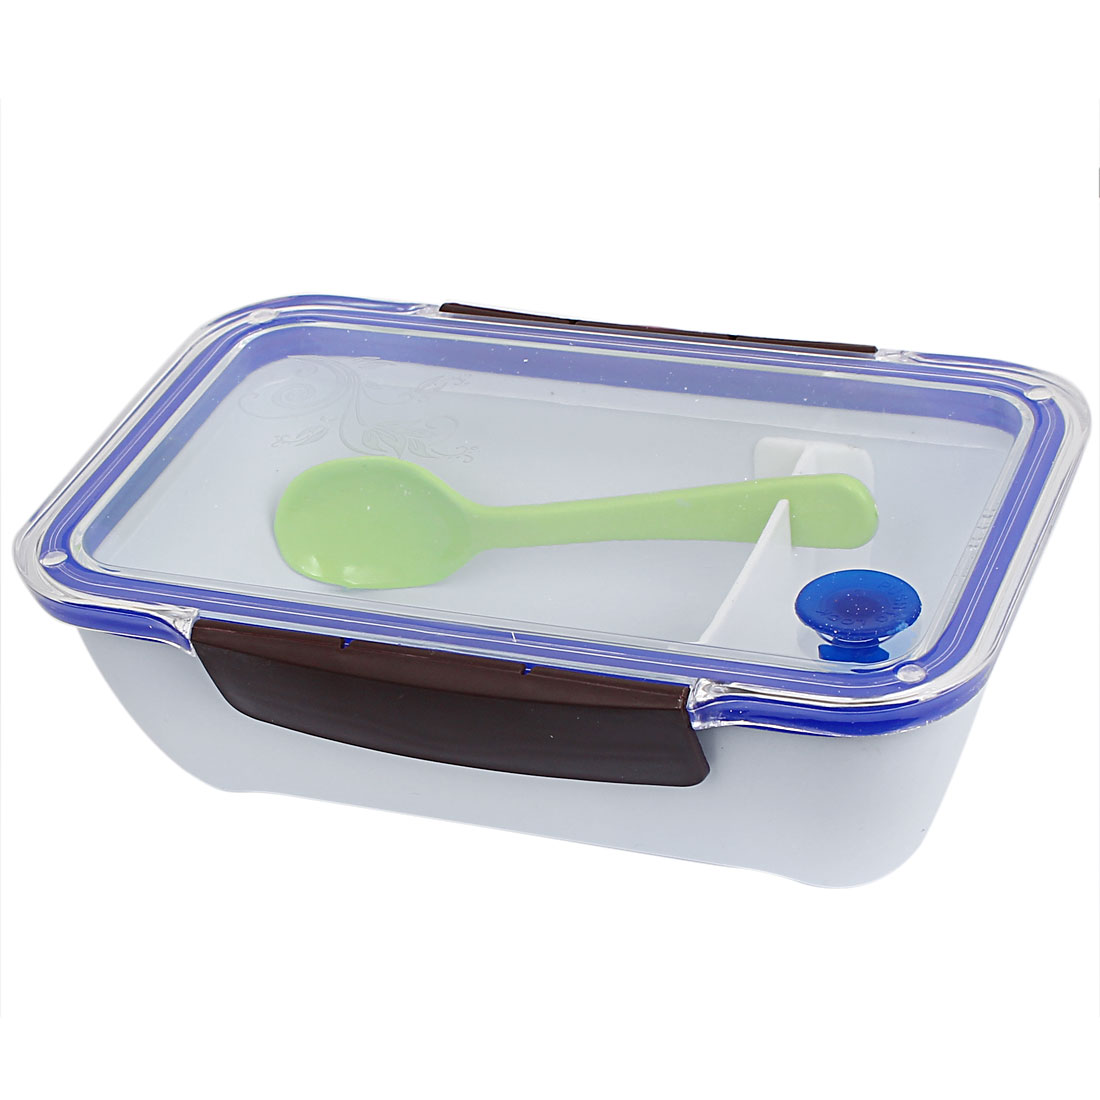 Picnic Plastic Rectangle Lunch Box Food Storage Container Blue Chocolate Color